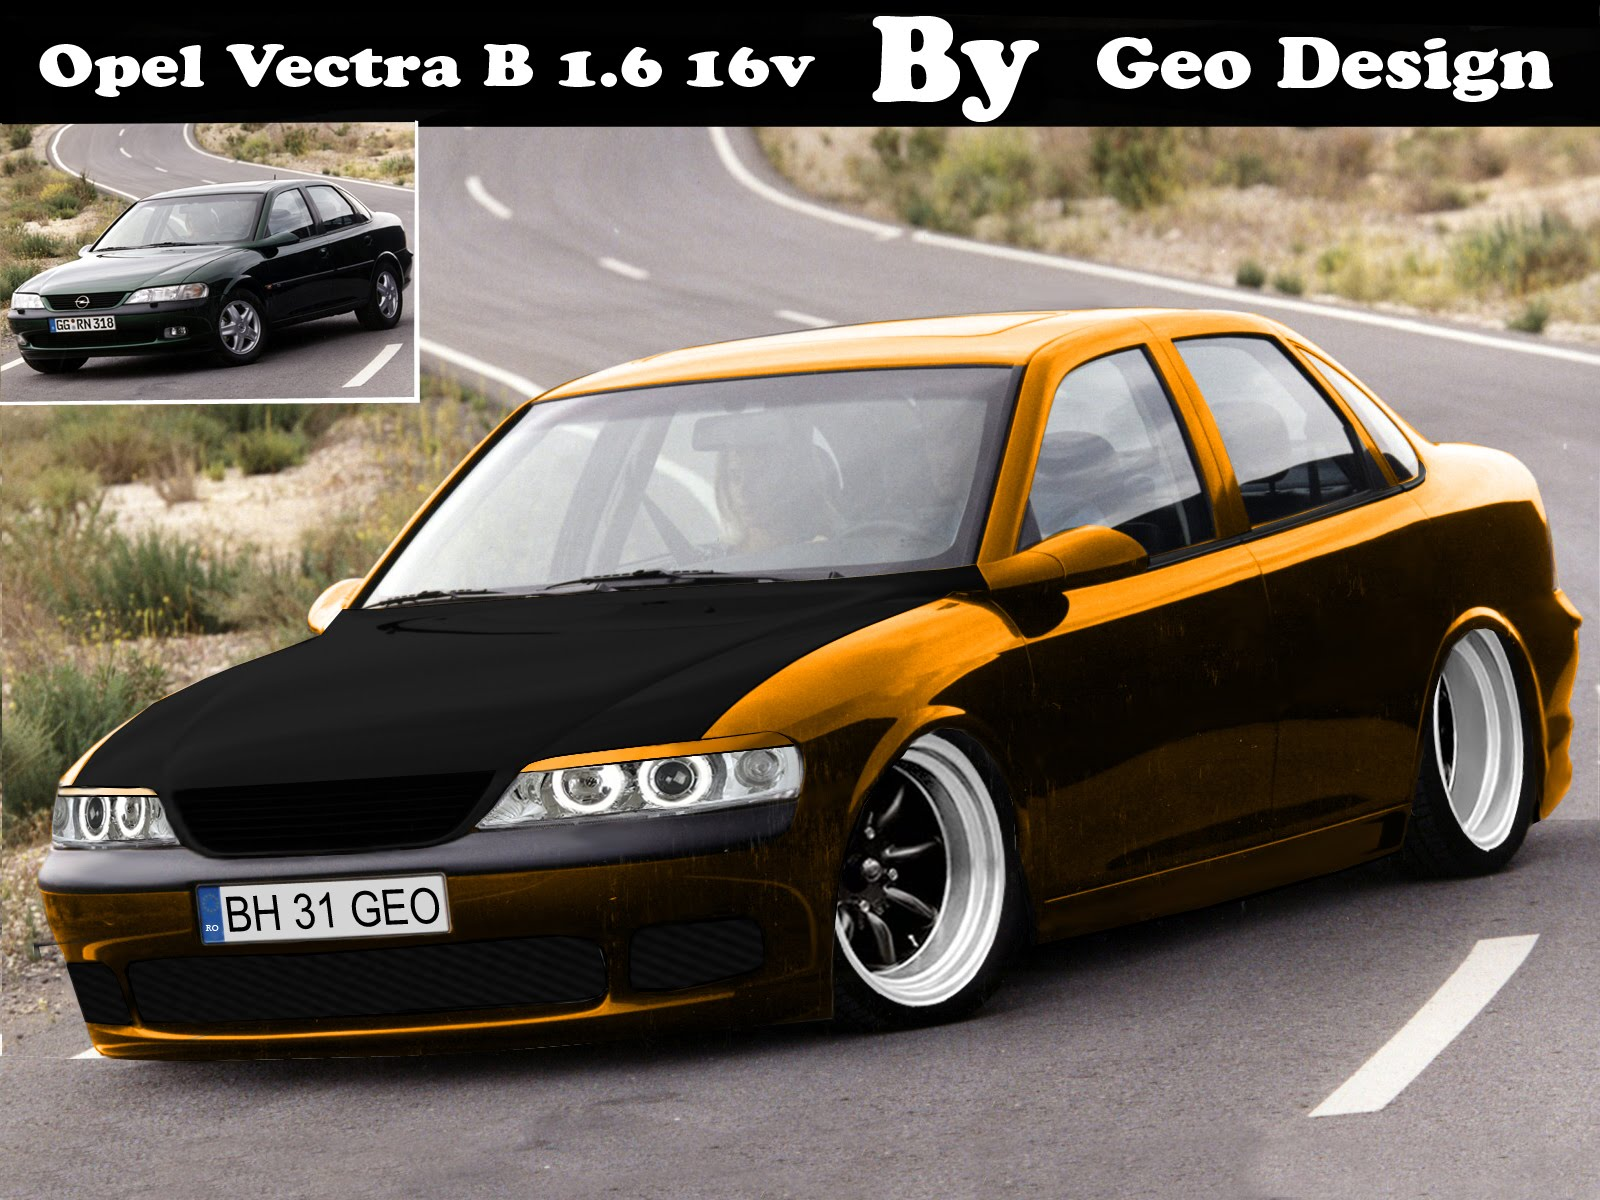 opel vectra b picture 11 reviews news specs buy car. Black Bedroom Furniture Sets. Home Design Ideas